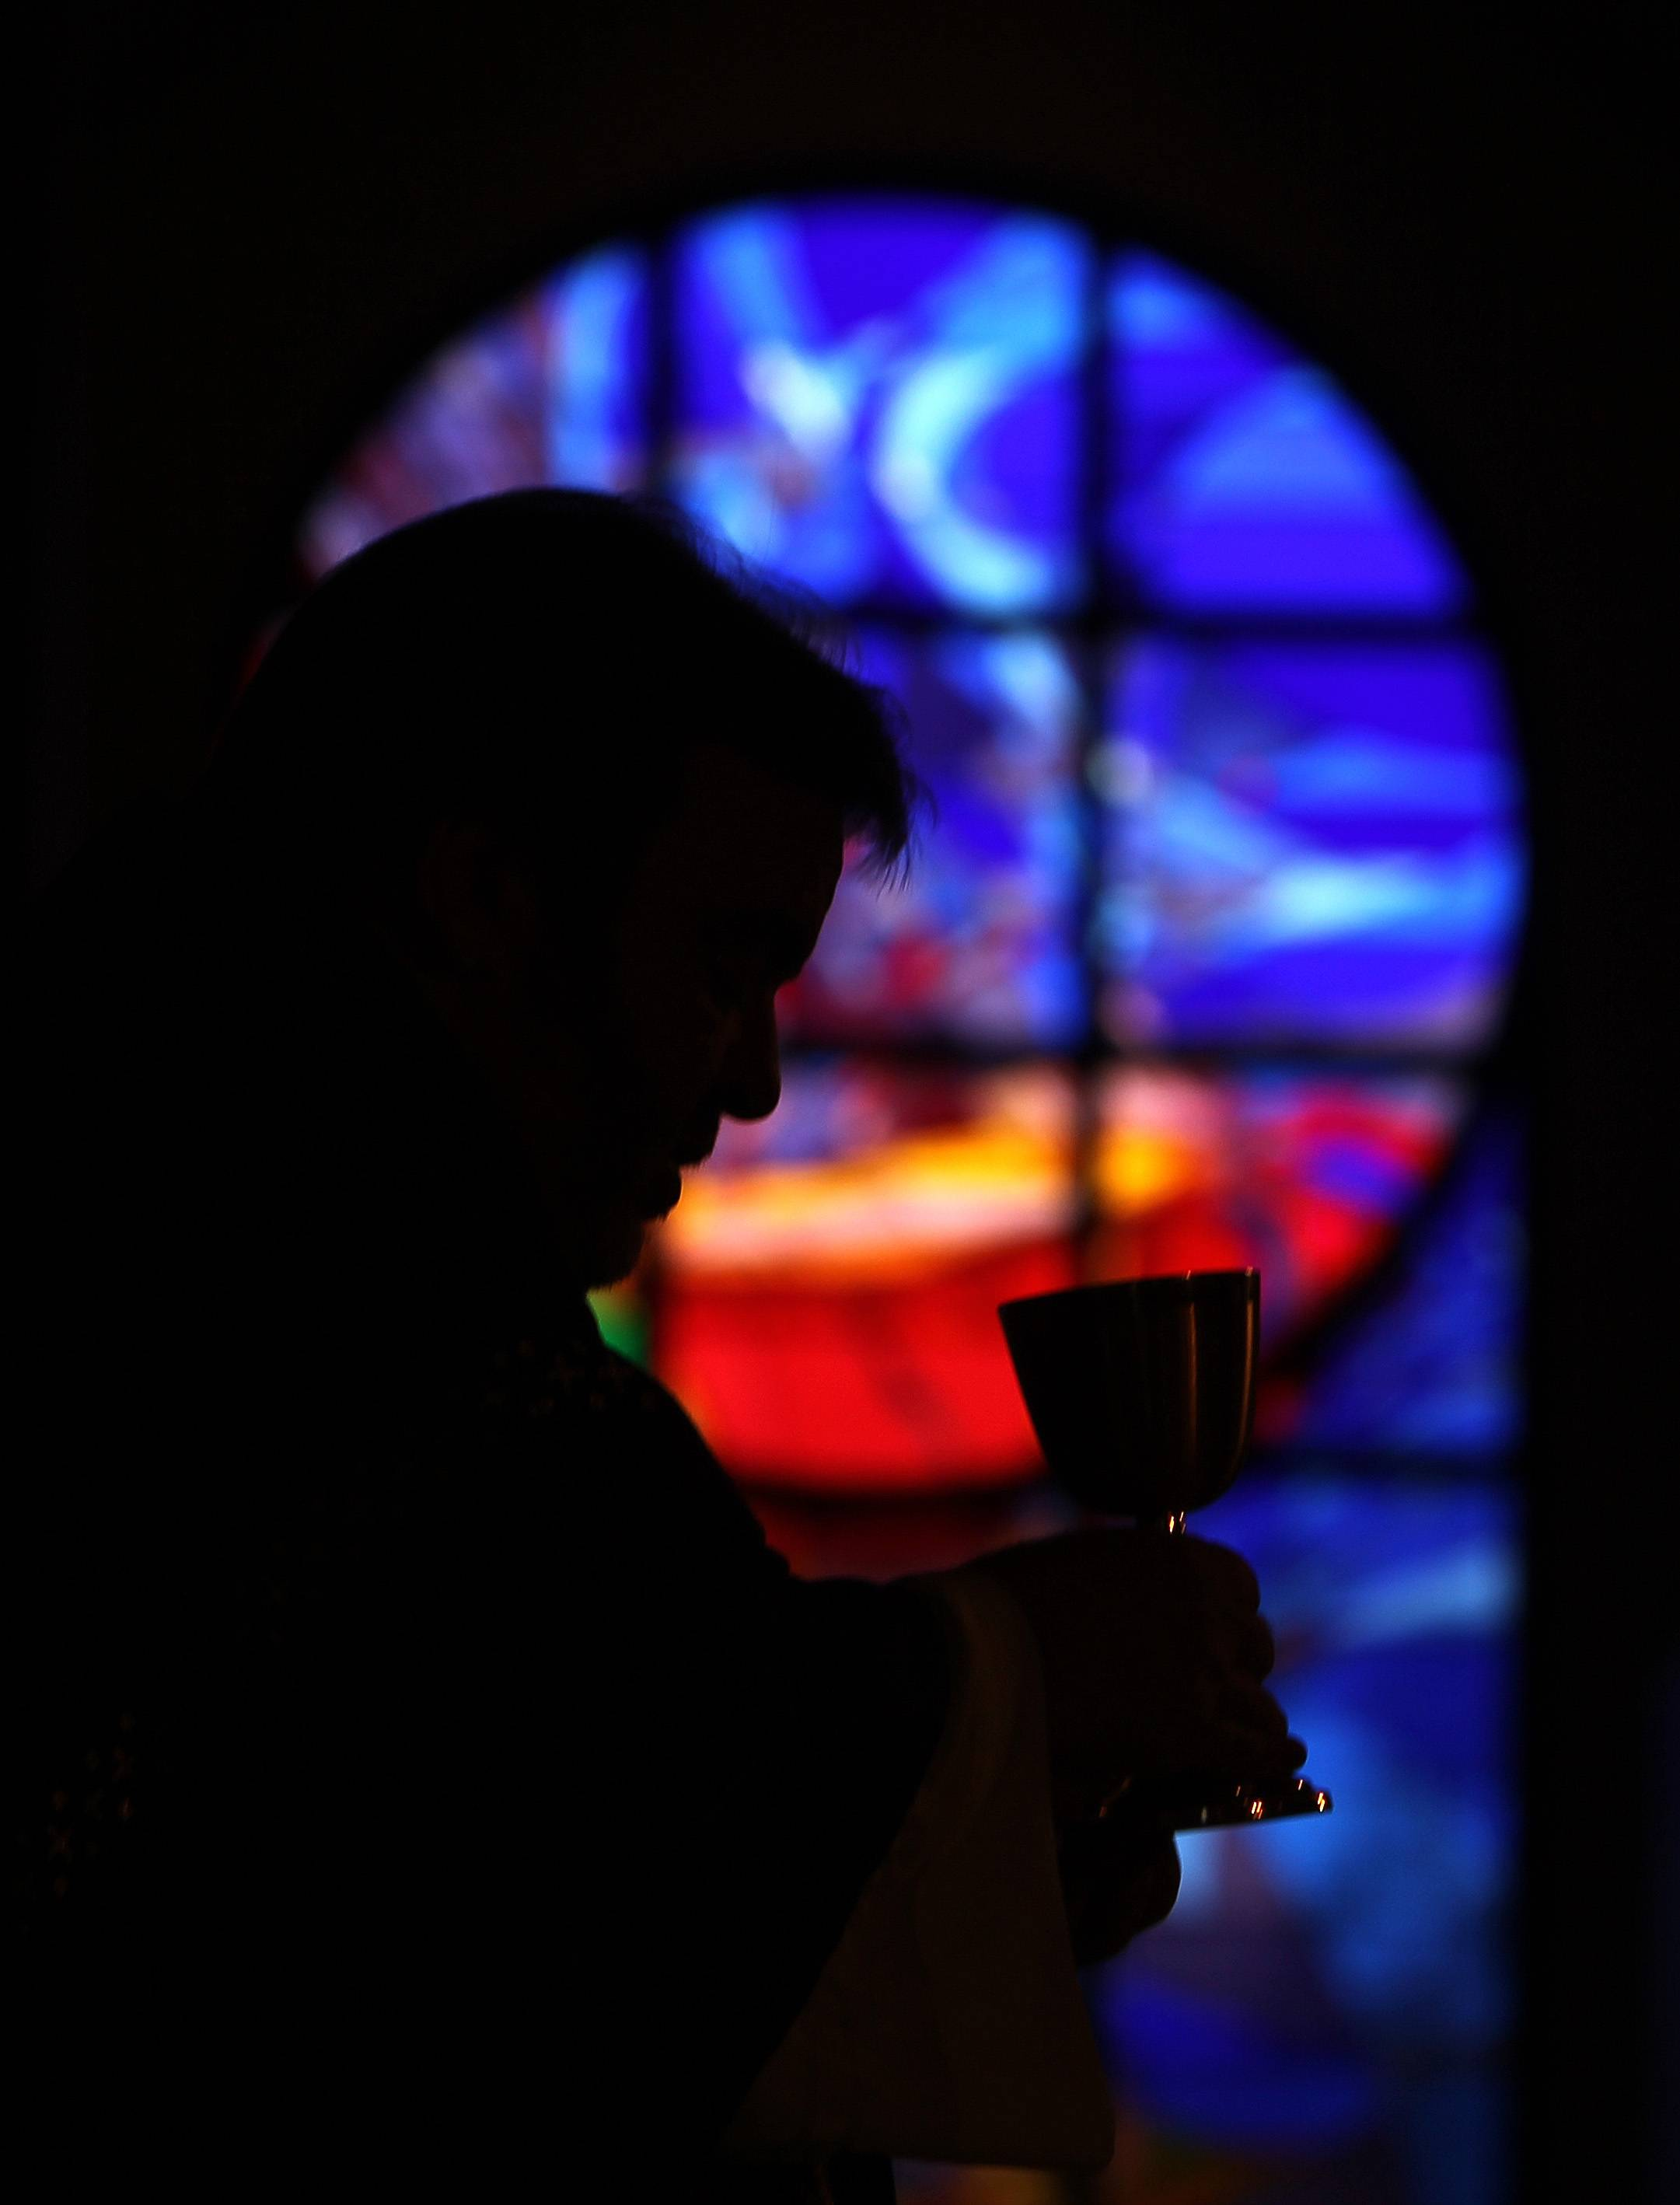 Rev. Tom Rafferty leads communion during an Ash Wednesday service at St. Anthony of Padua Catholic Church in The Woodlands, Texas.